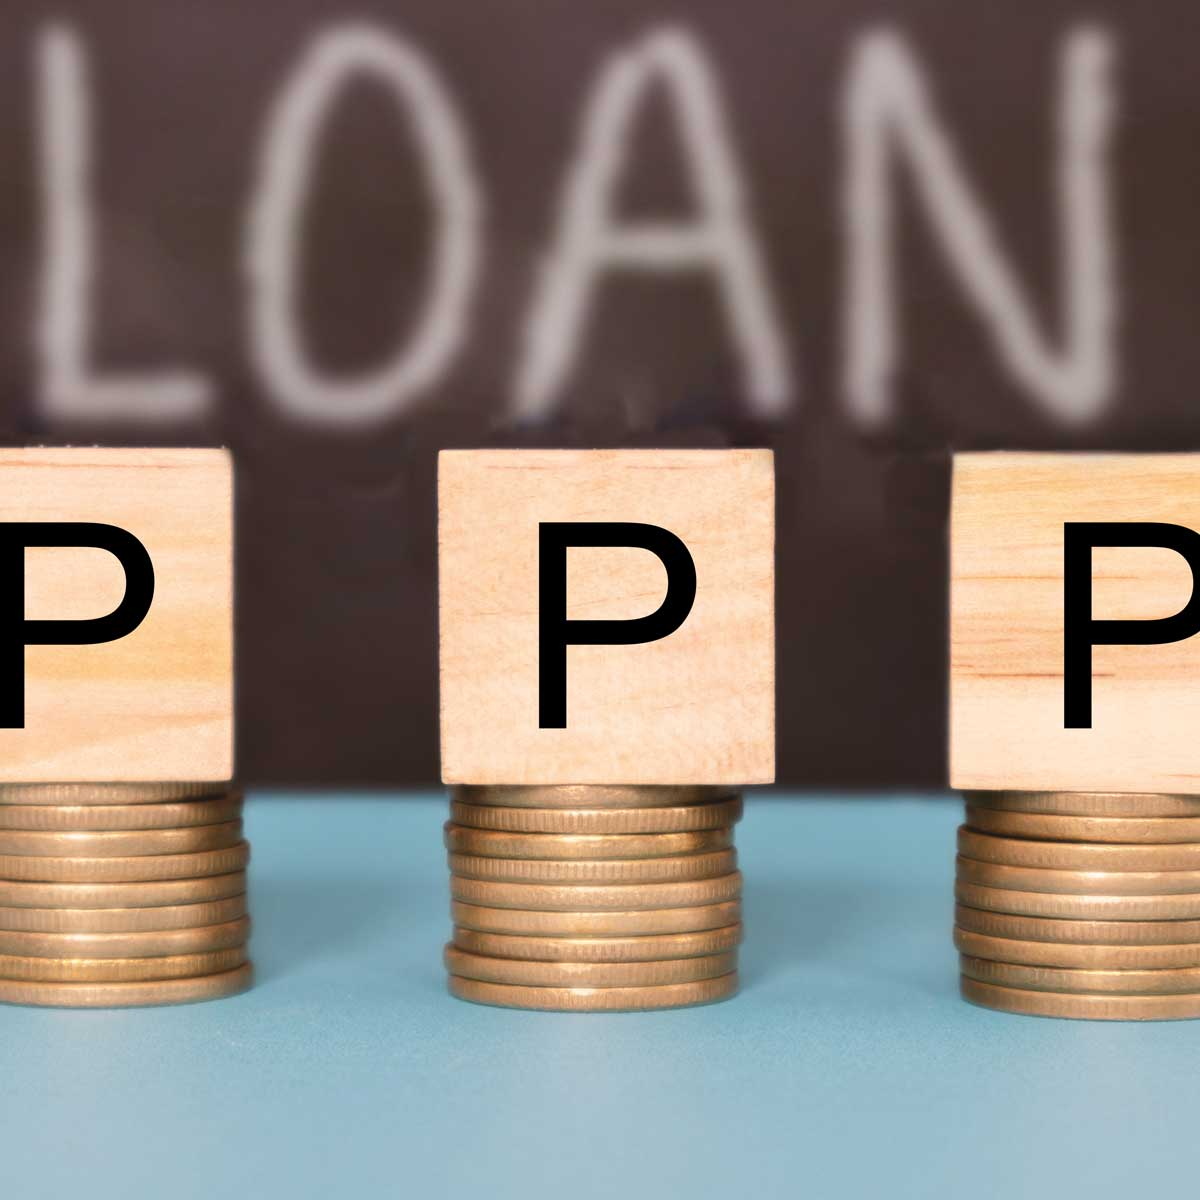 PPP or Paycheck Protection Program business loan as coronavirus or covid-19 aid concept